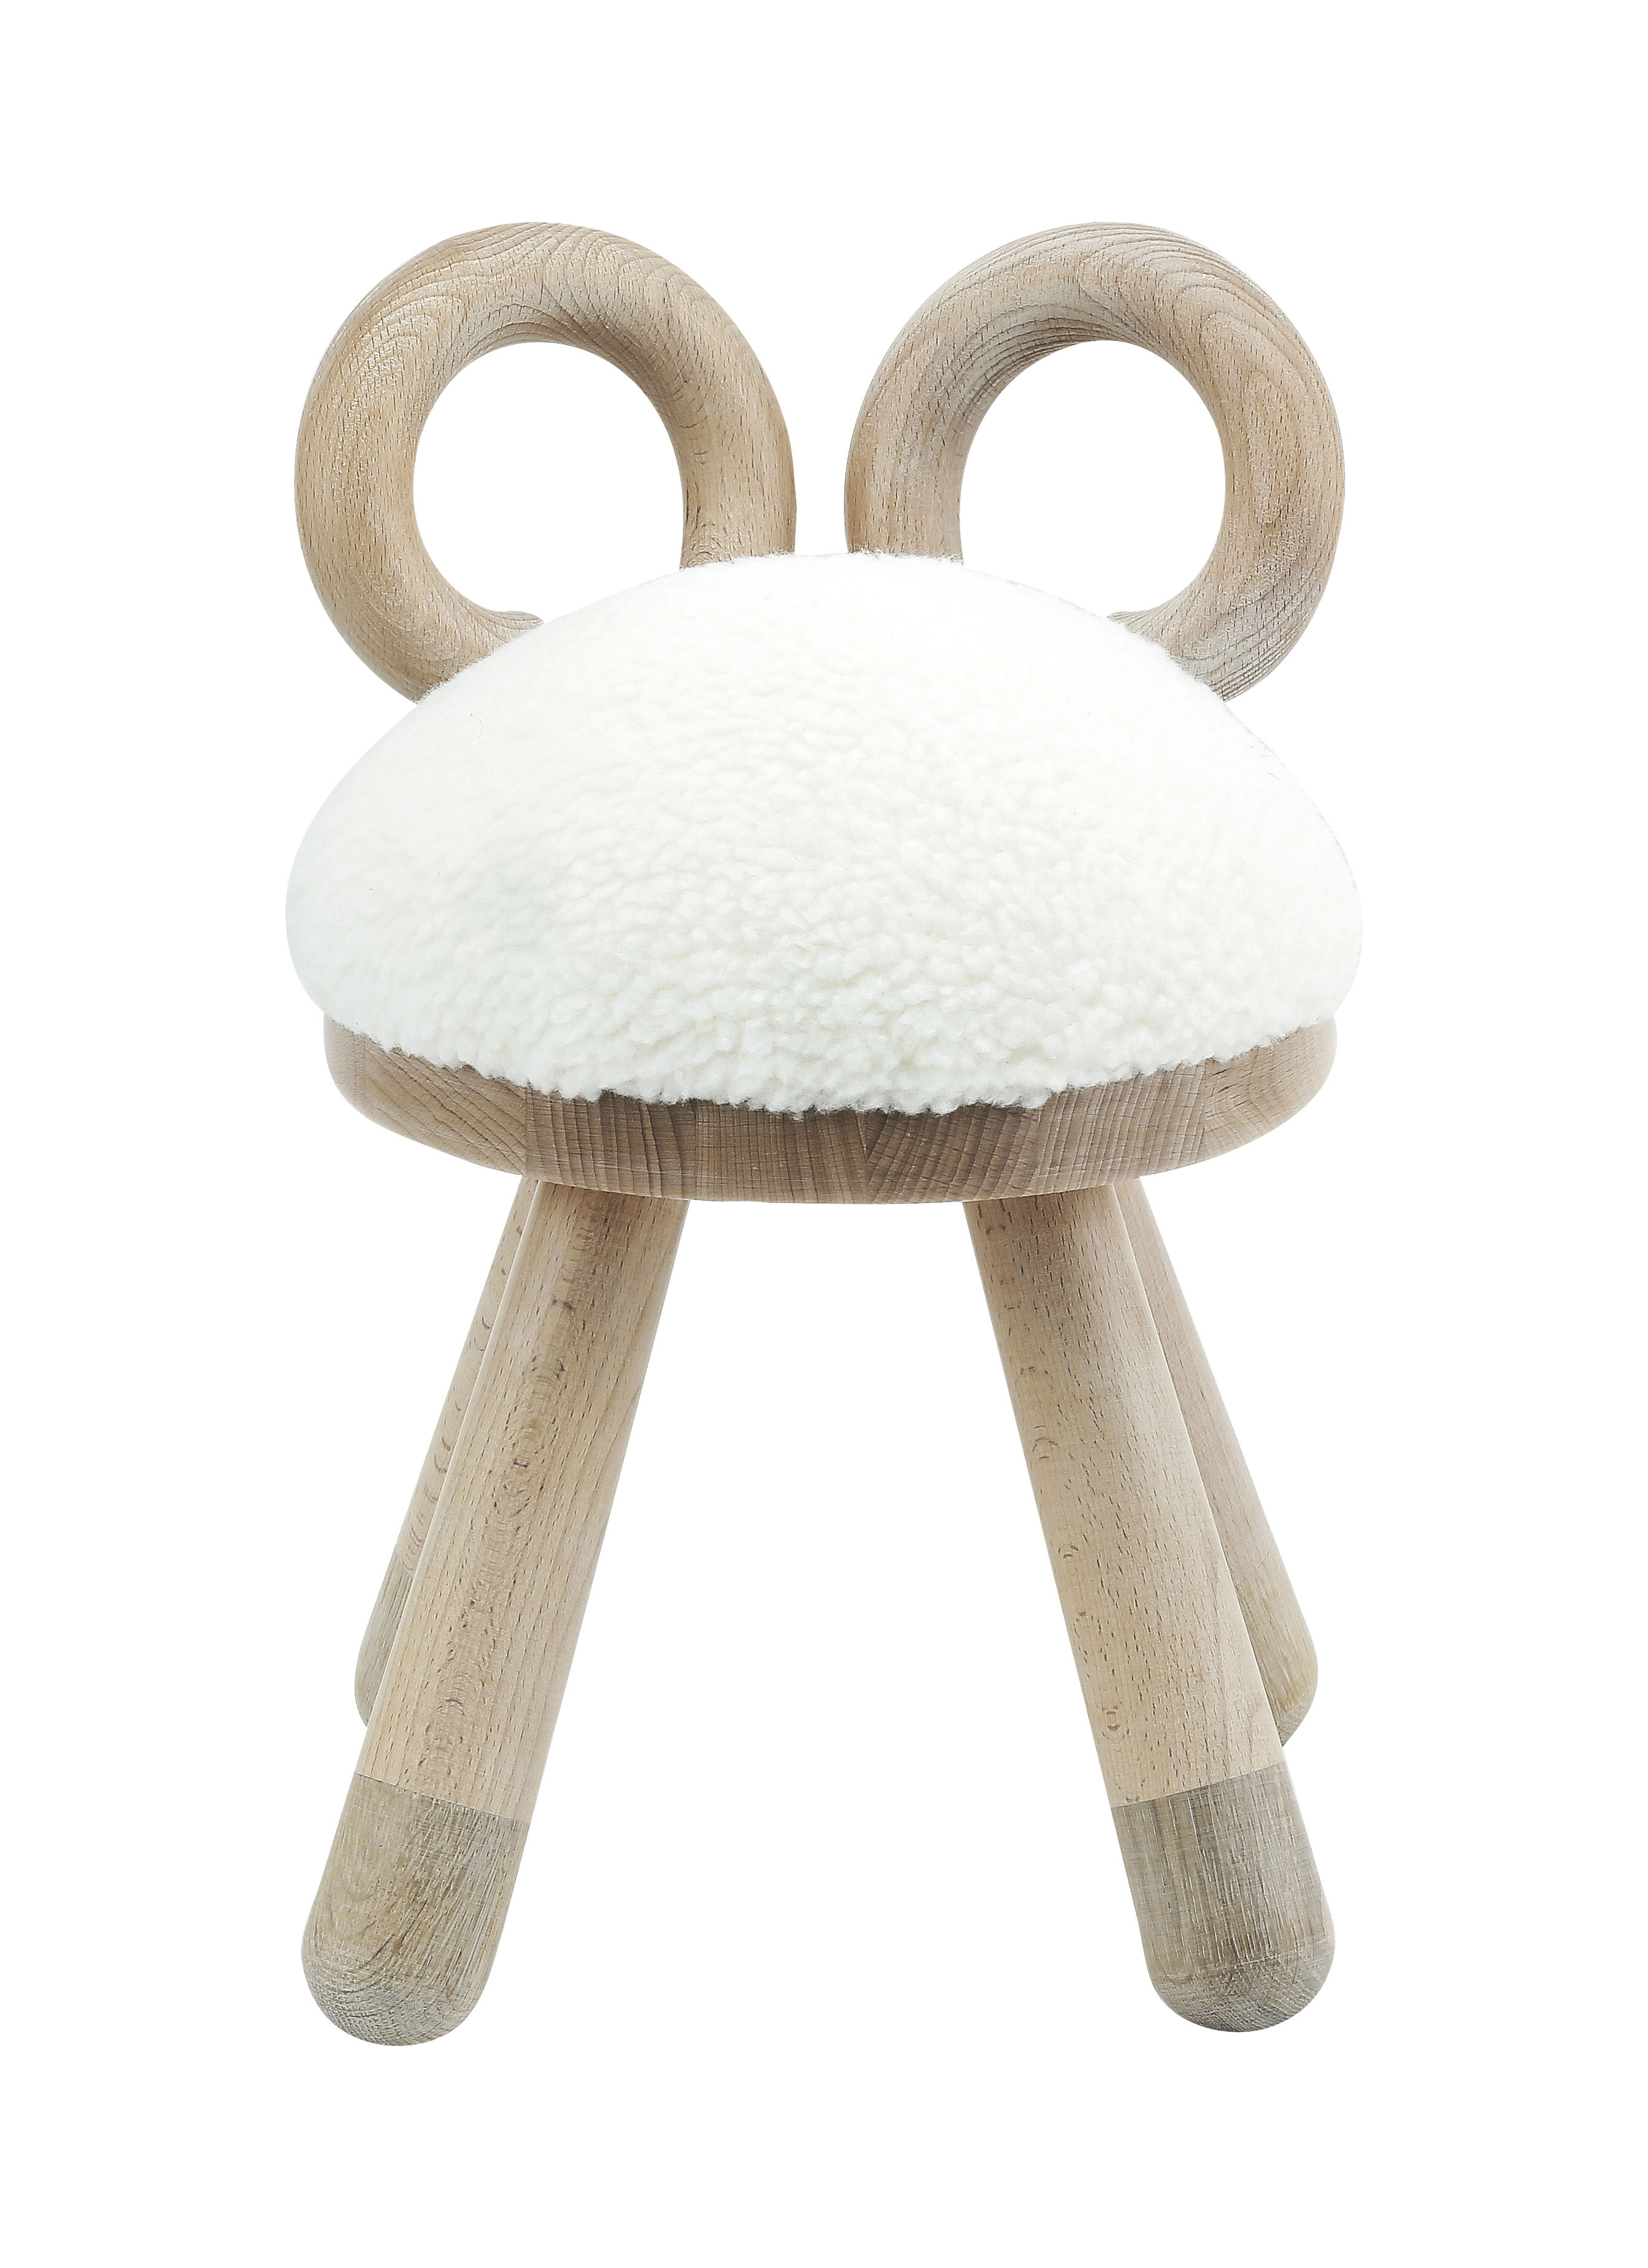 Furniture - Kids Furniture - Sheep Children's chair - H 39 cm by Elements Optimal - Natural wood / White - Foam, Natural beechwood, Solid oak, Synthetic fur